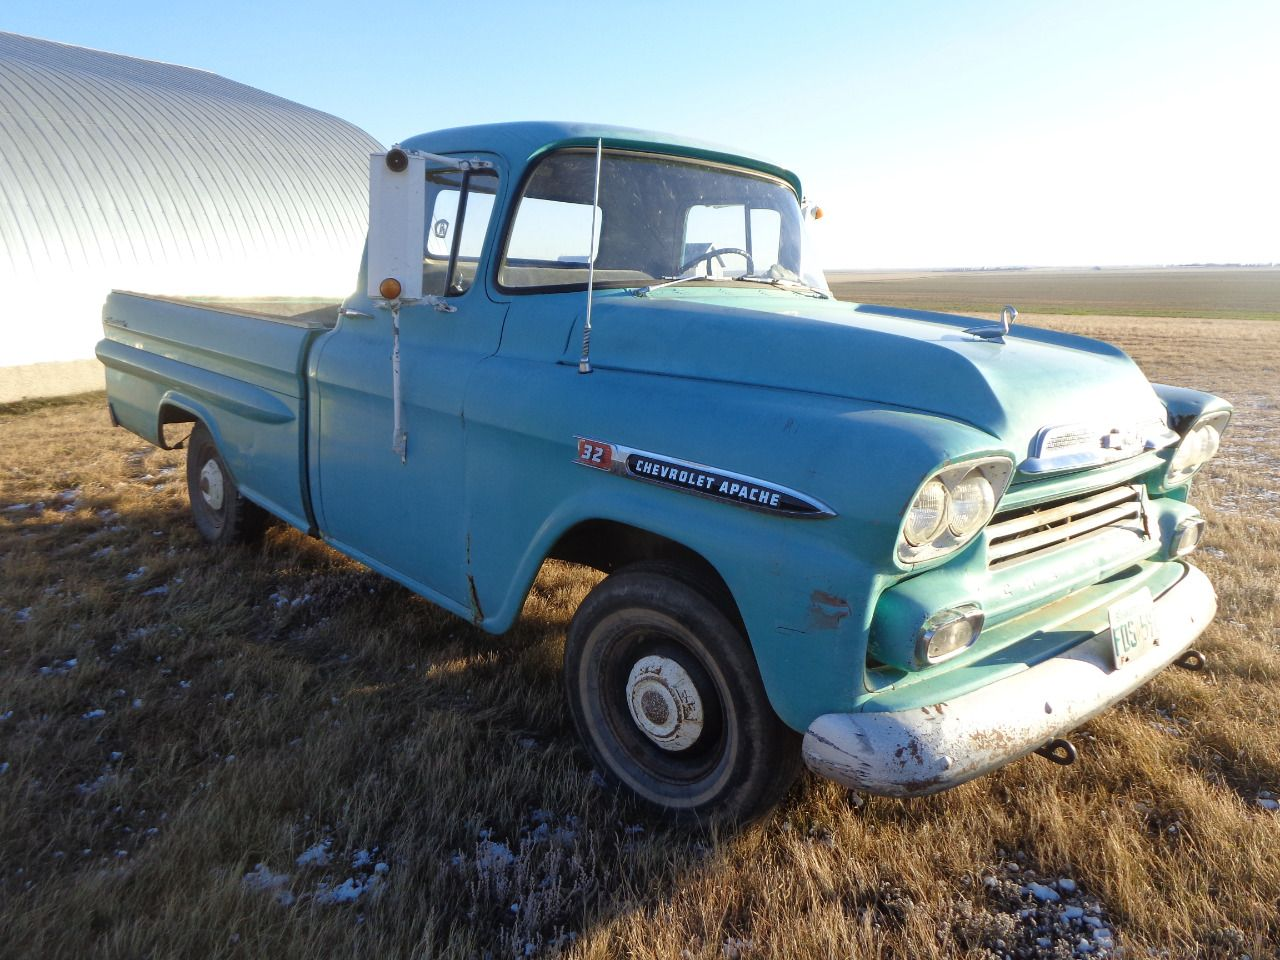 1959 Chevrolet 9320 2wd Long Box Truck 6 Cyl 3 Spd Trans On Tree Fleetside Radio 64 193 Miles Showing S 93204604978a Original Owner Shedded